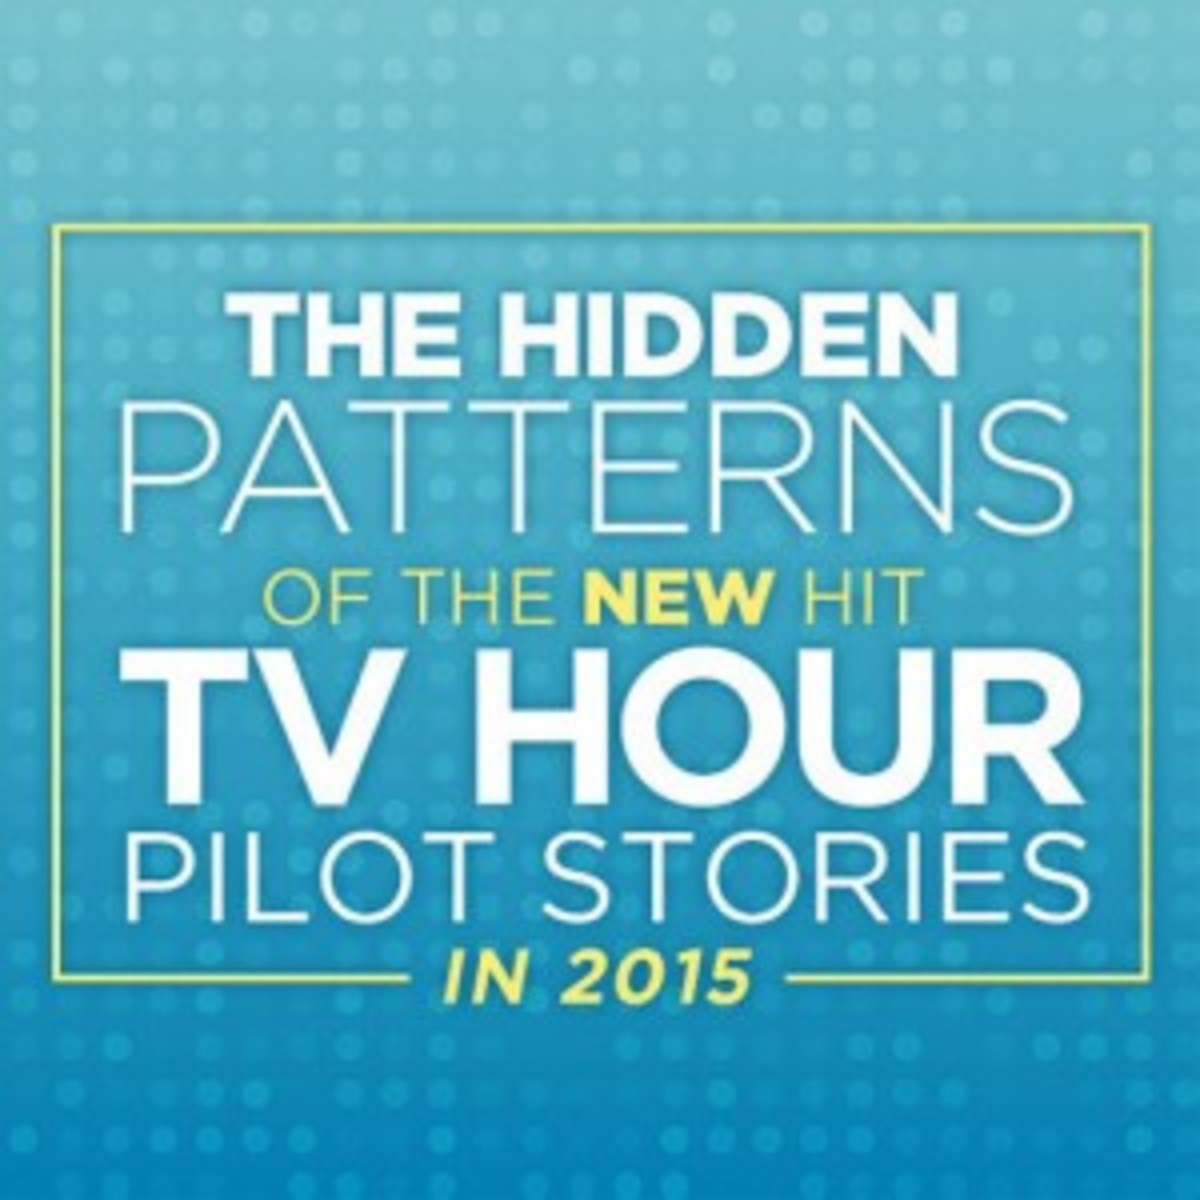 ws_hiddenpatternsoftv-500.jpg_medium